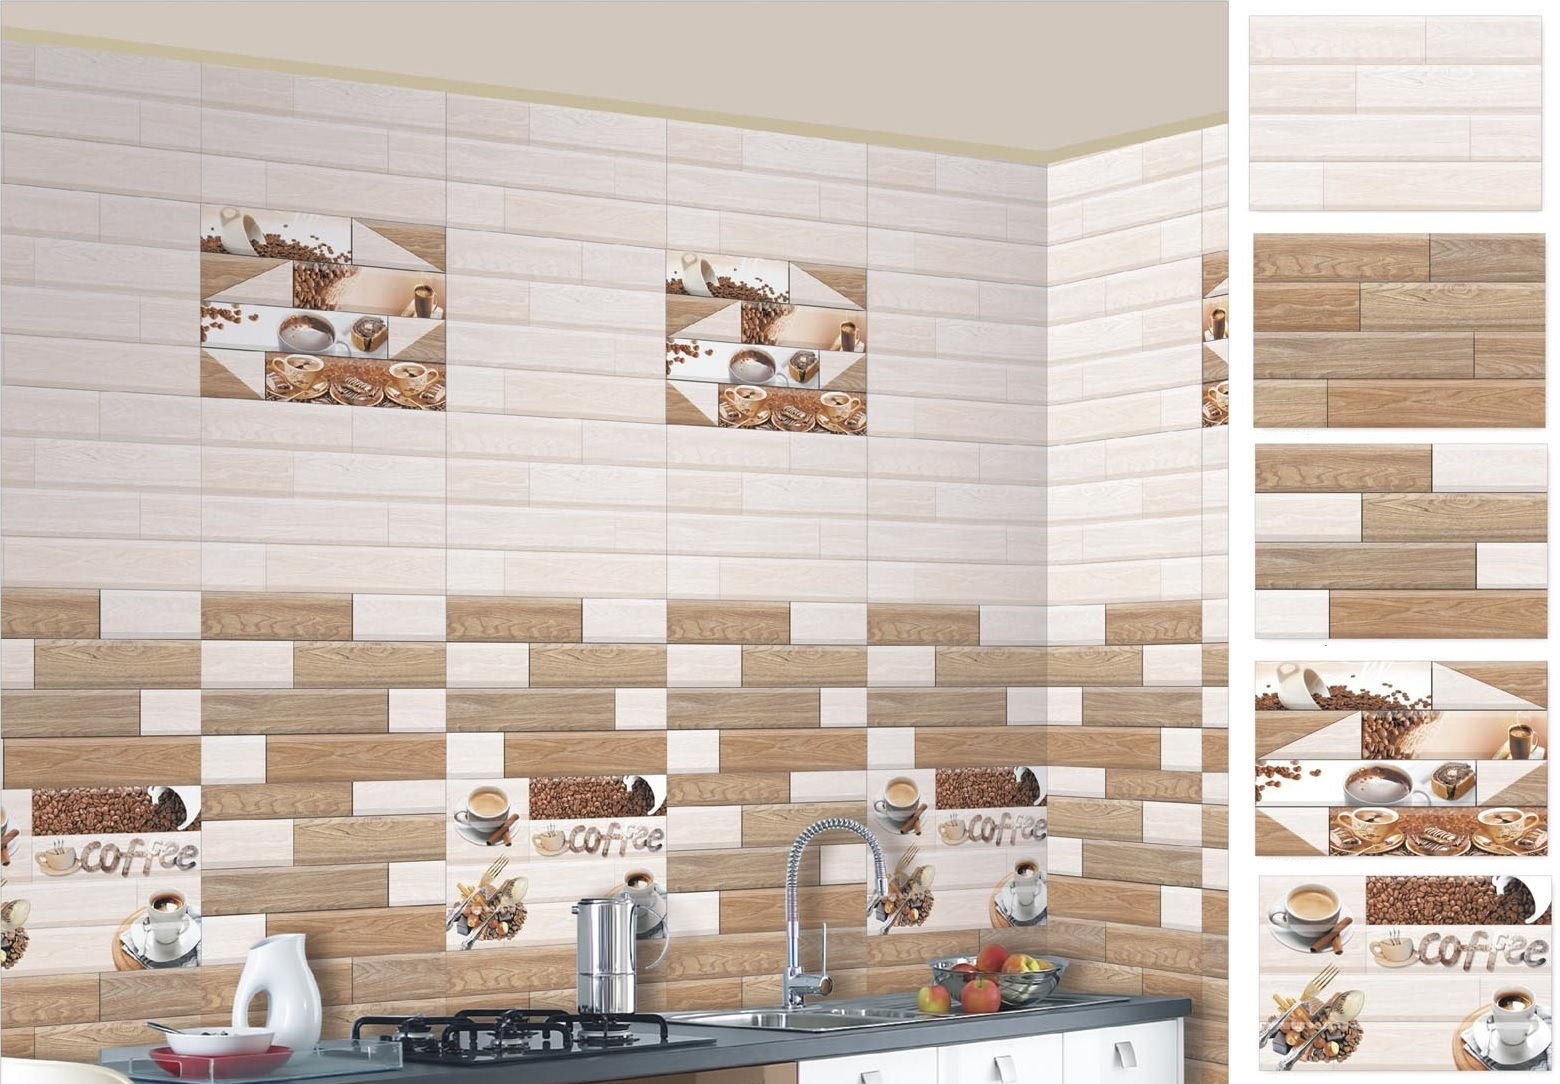 Kitchen wall tiles ideas with images - New modern house kitchen tiles designs ...